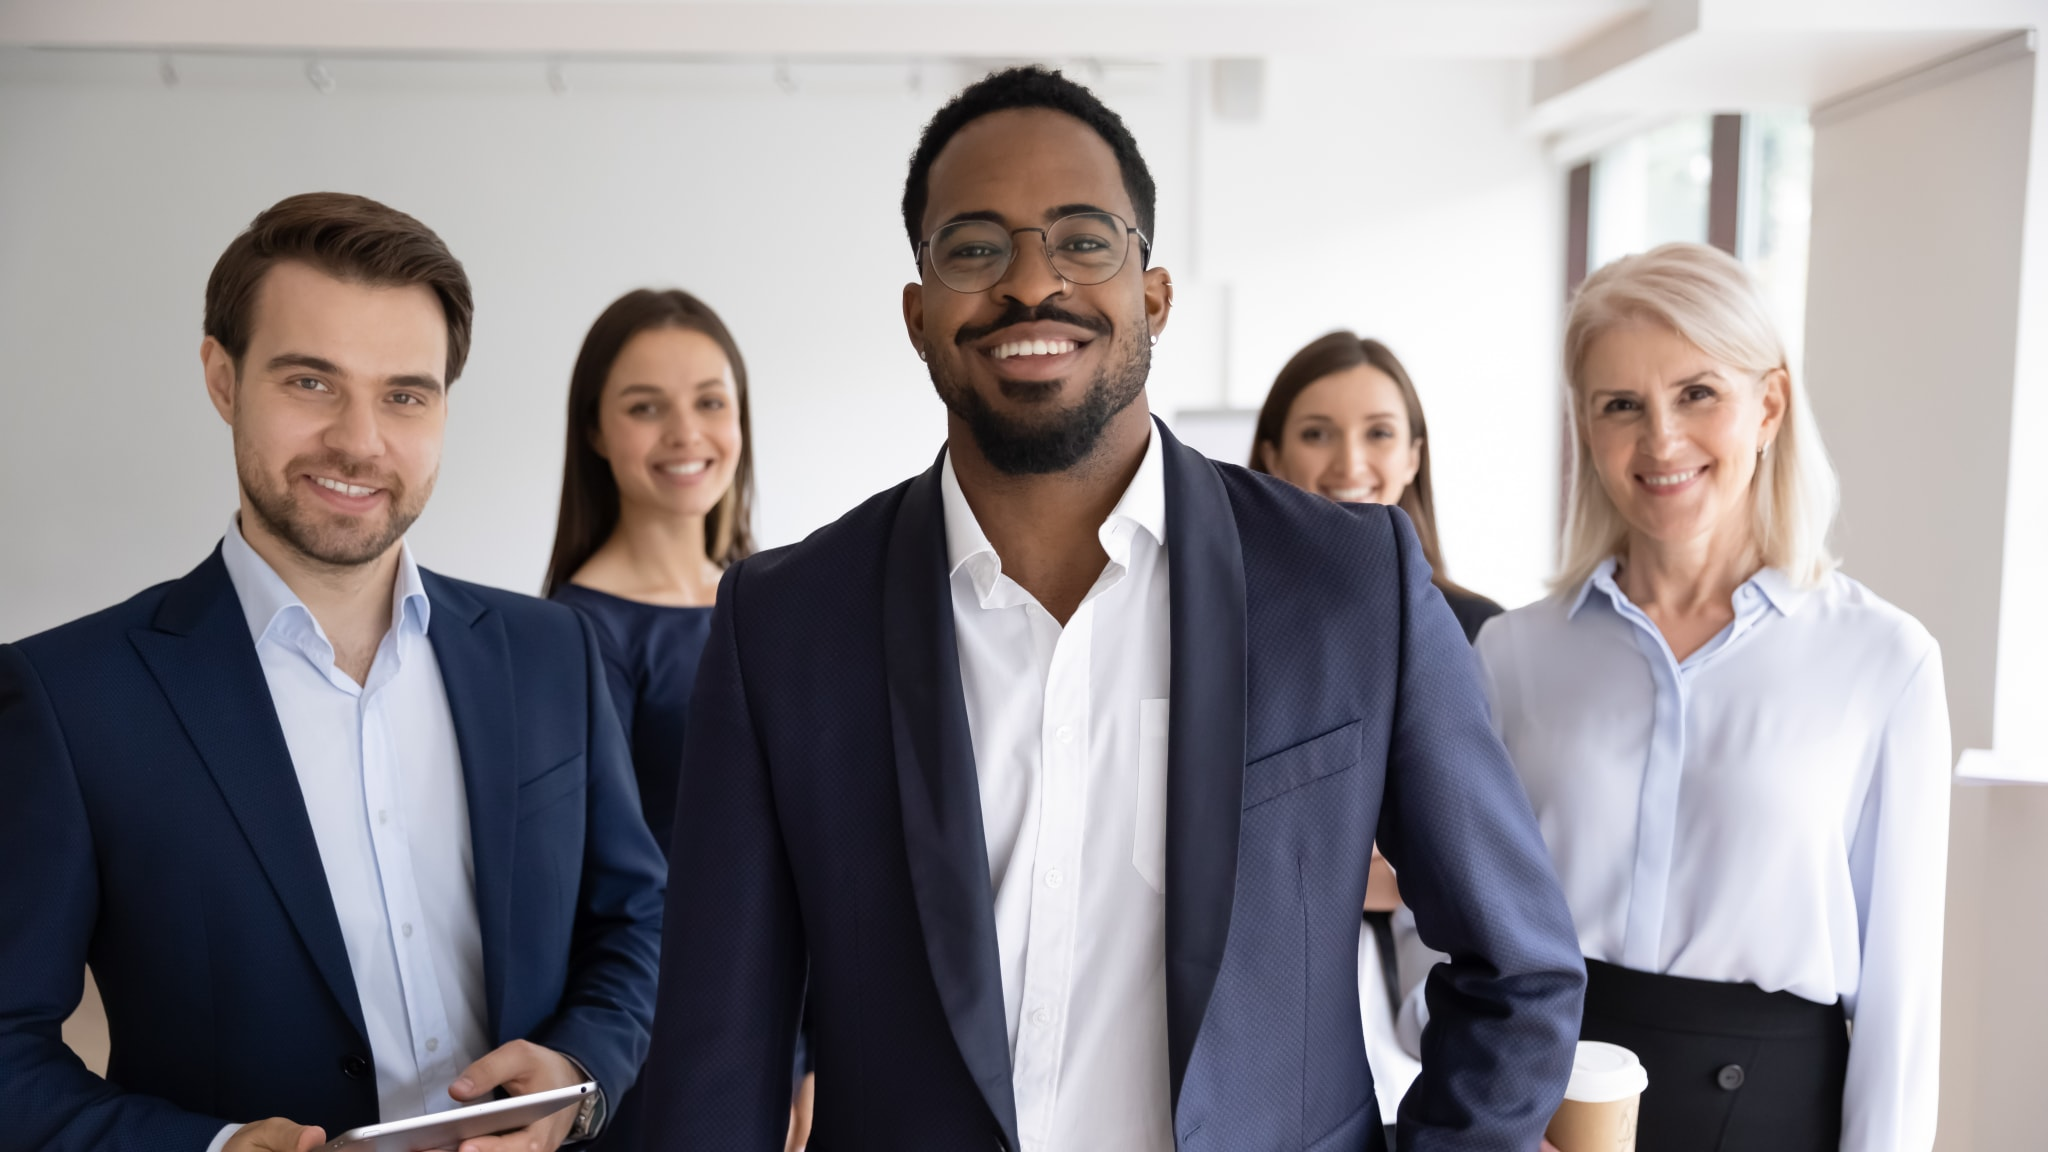 Group portrait of smiling motivated multiracial businesspeople stand show unity and support, happy multiethnic diverse colleagues coworkers posing together in office, teamwork, leadership concept